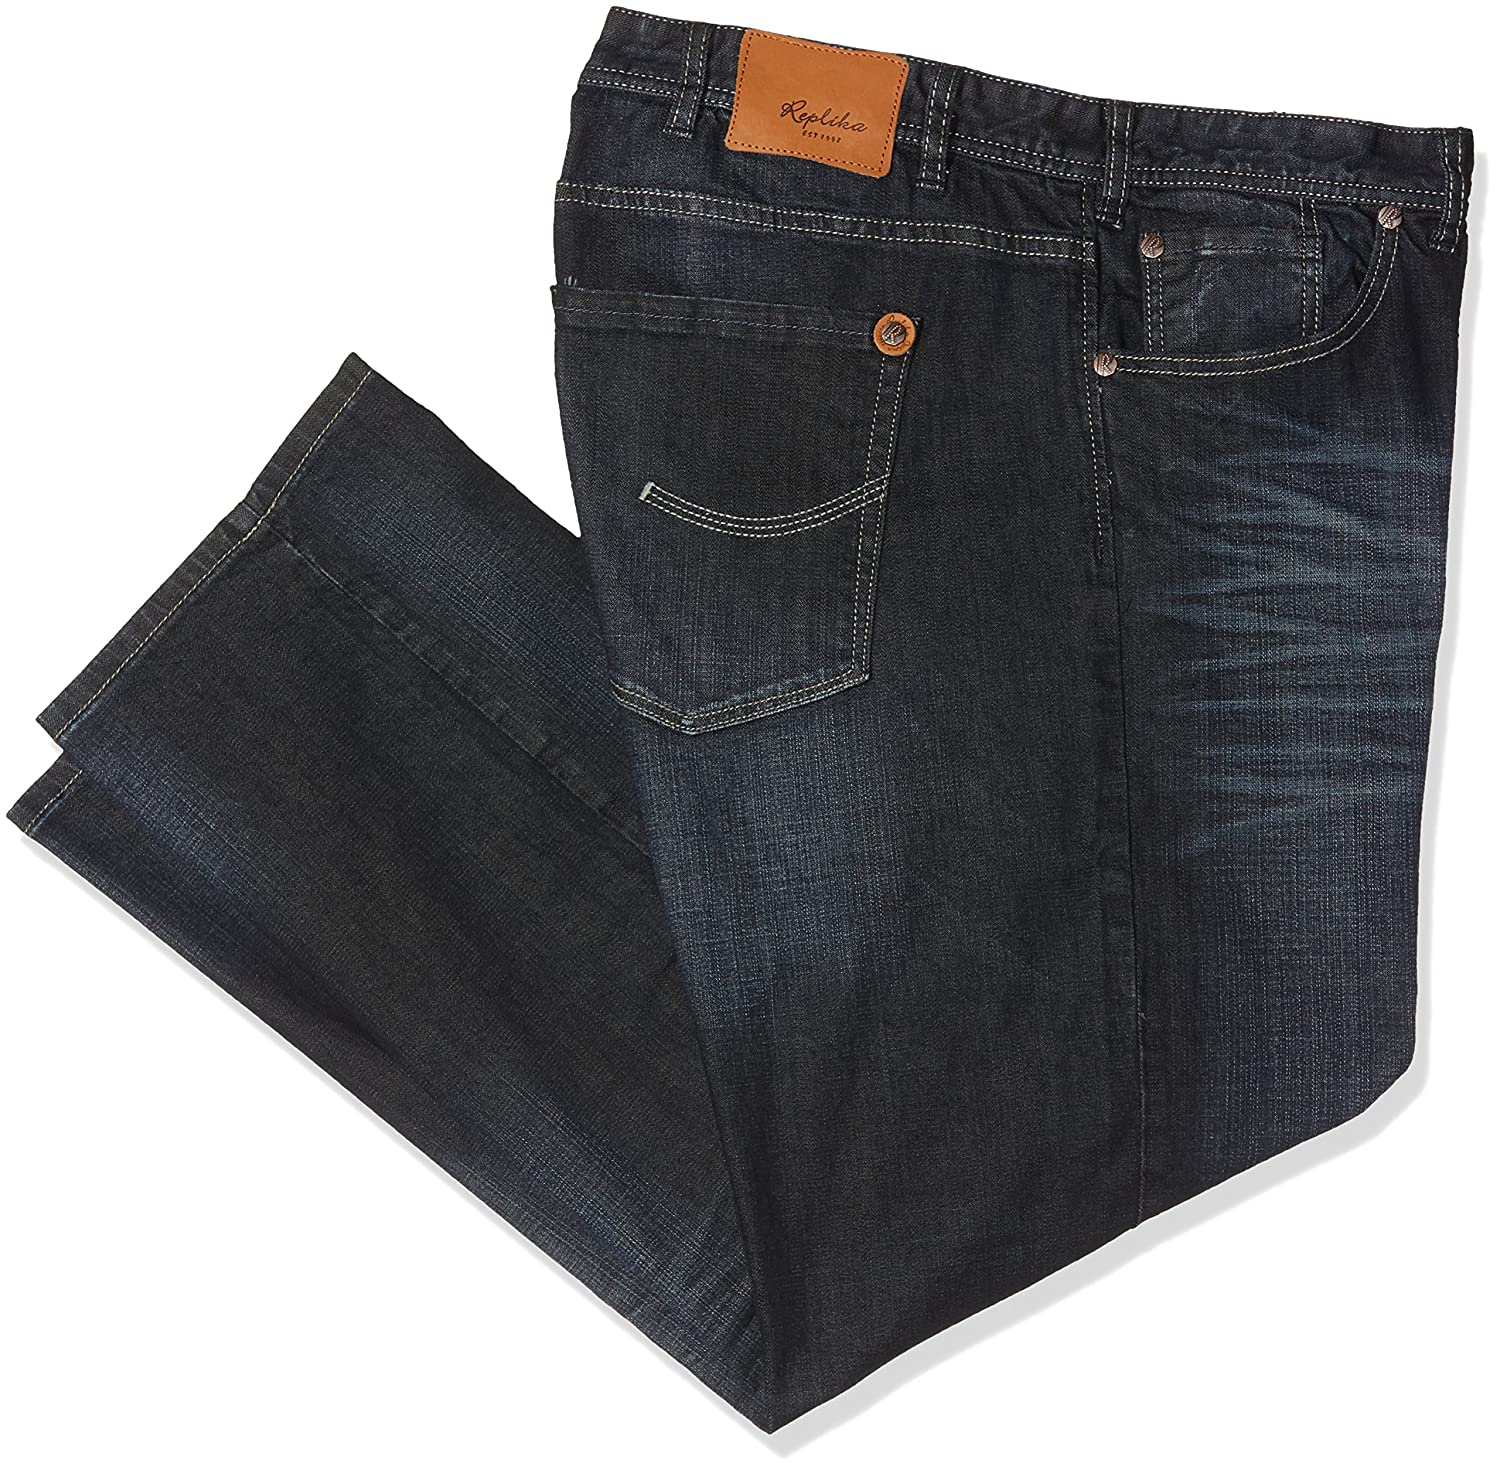 cab735daac9 ALLSIZE Company Replika Designer Jeans Straight Leg with Dark Wash Extra  Large Sizes at Amazon Men s Clothing store